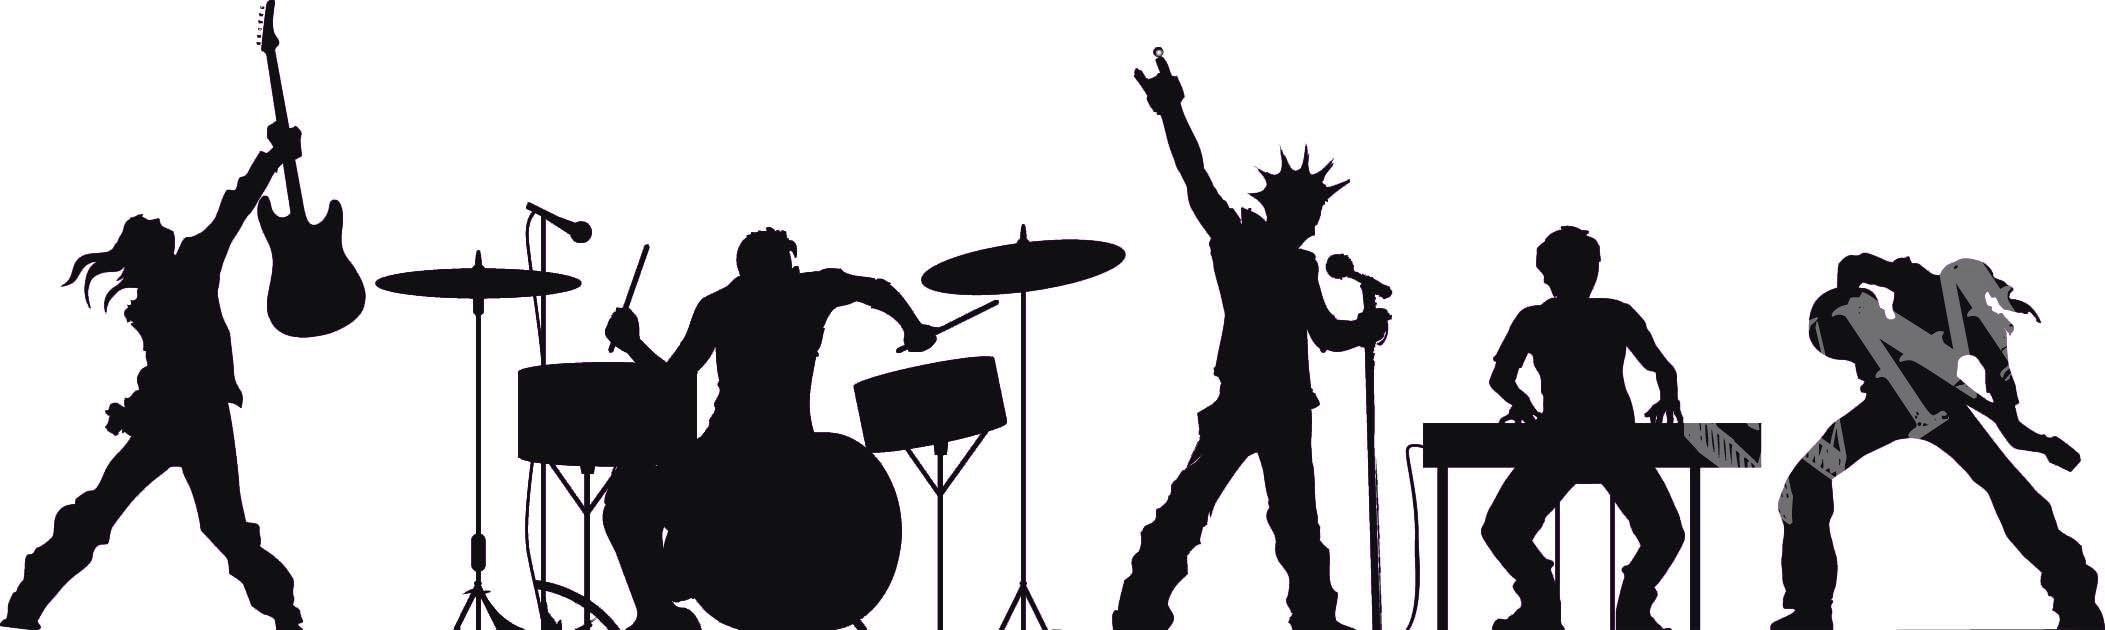 Band clipart band live. Best of gallery digital